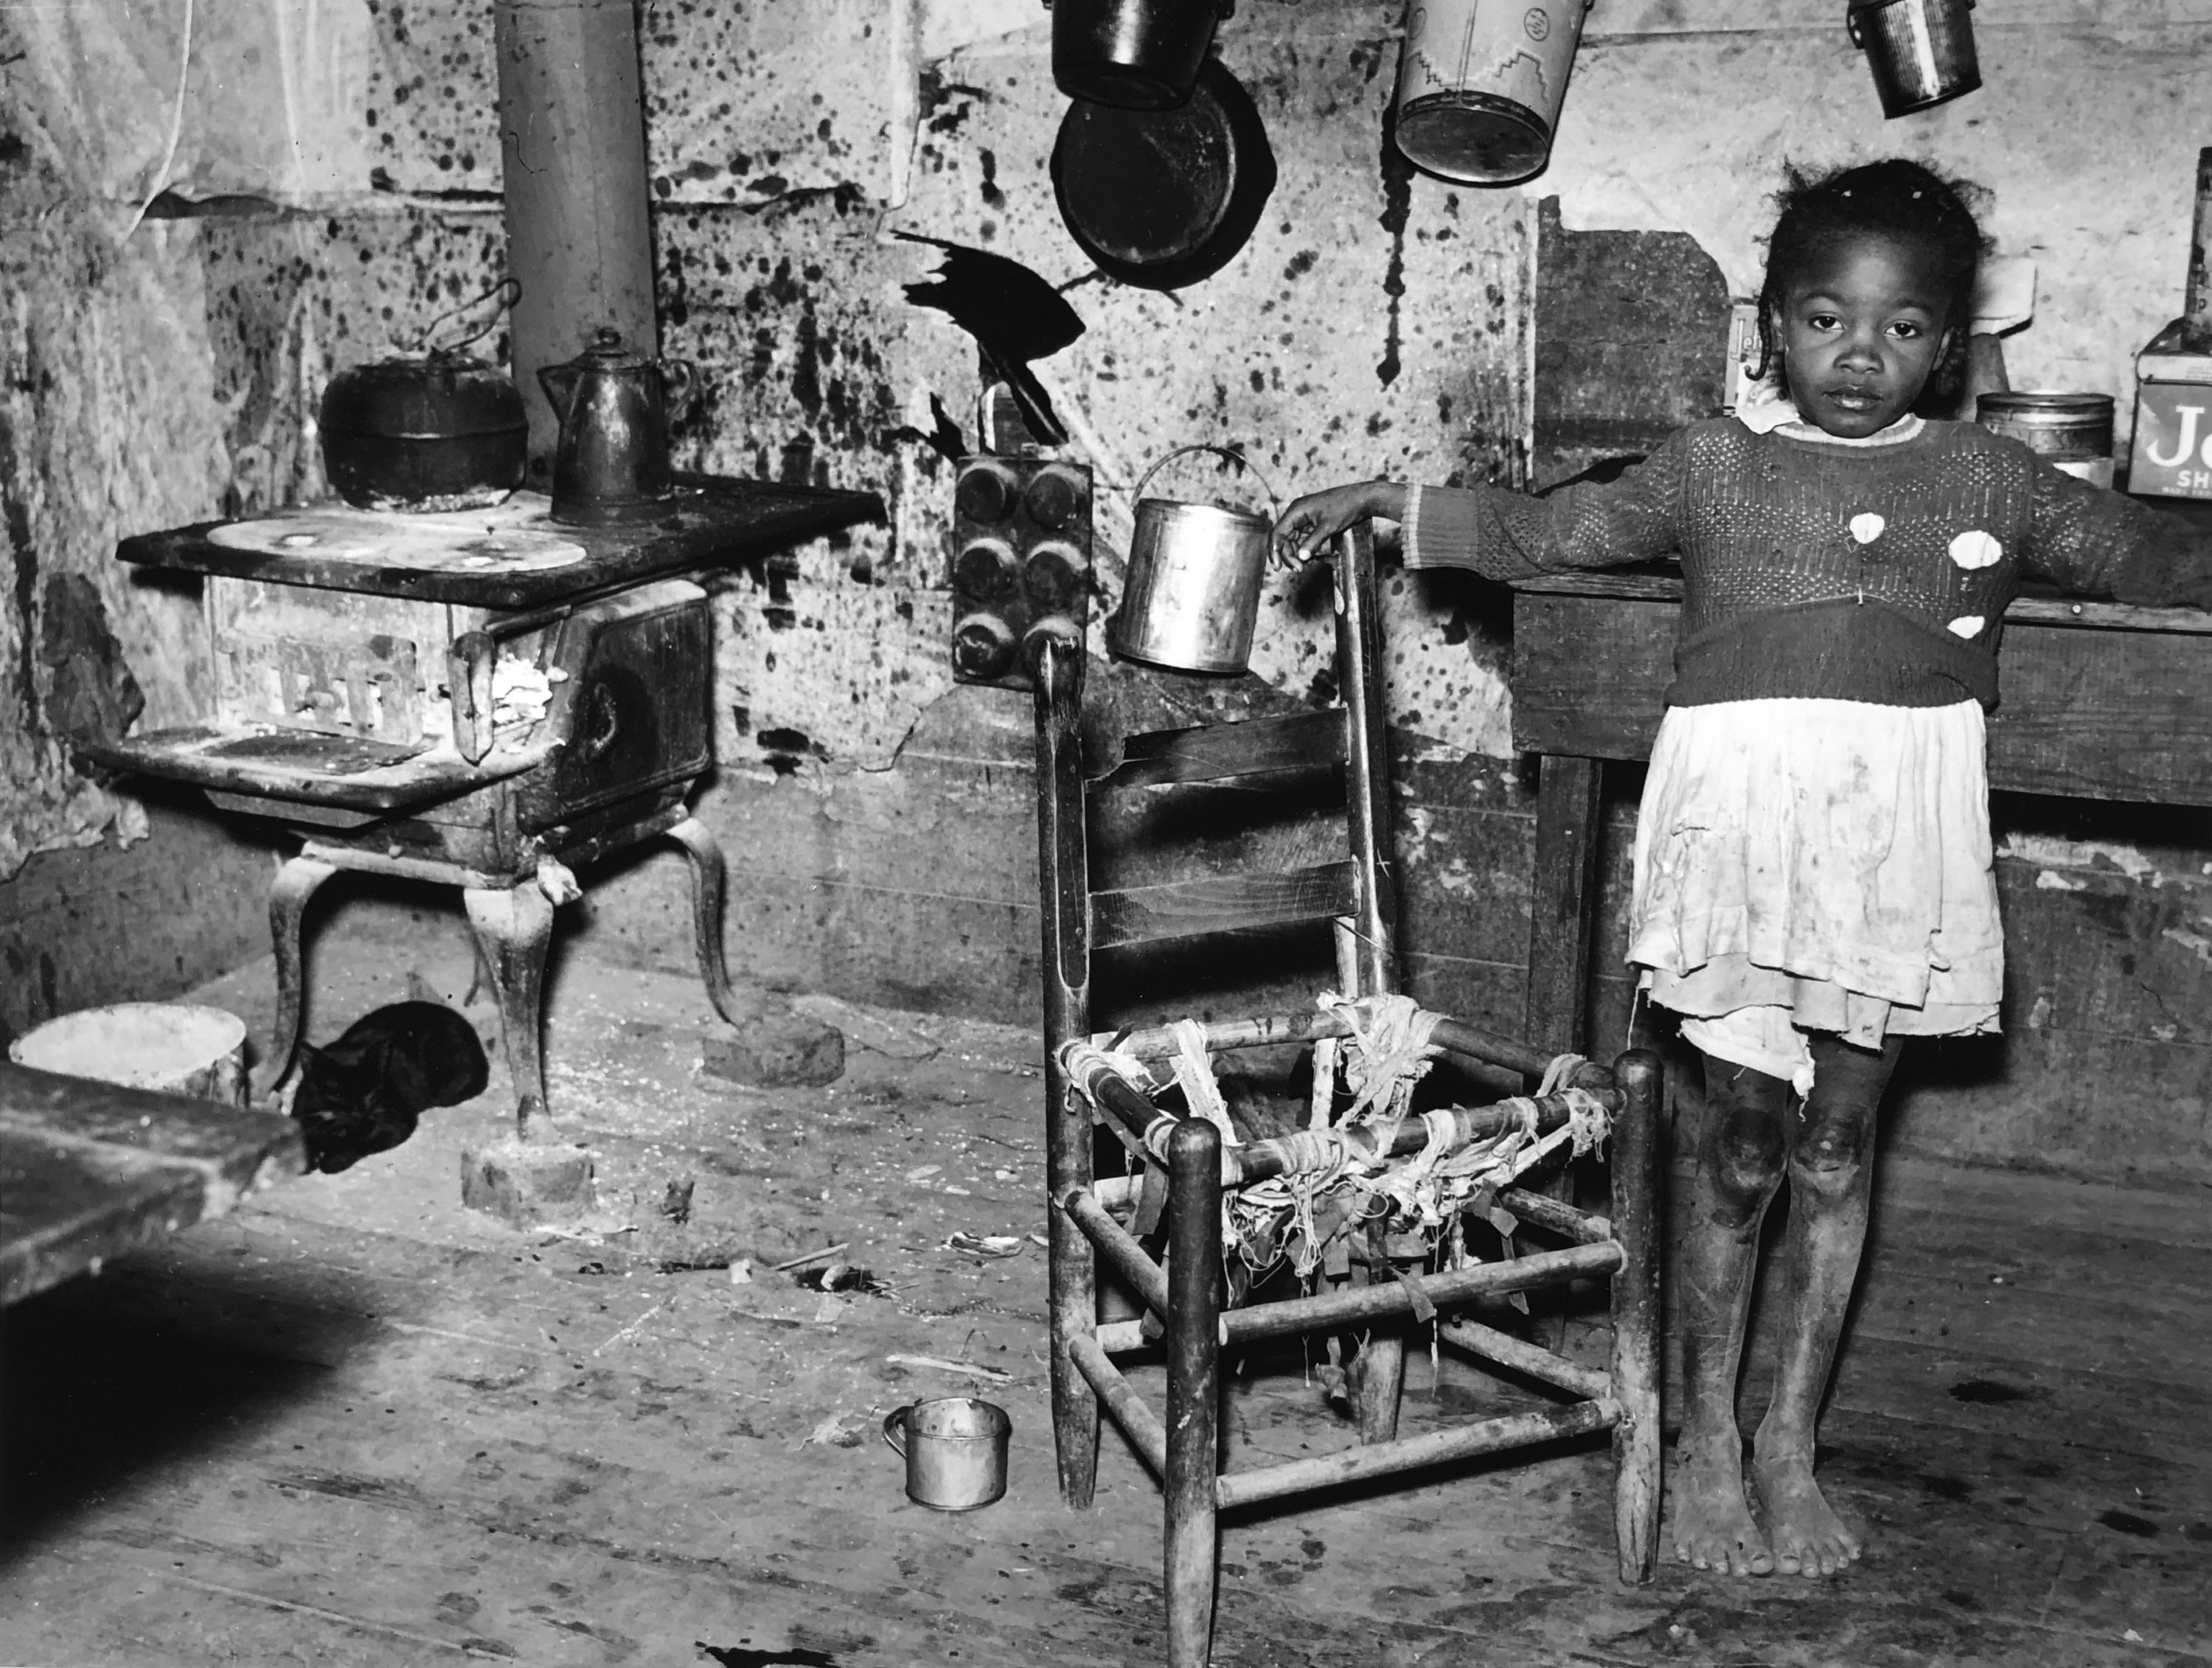 Marion Post Wolcott, Tenant's Daughter in Kitchen of Dilapidated Home, MS, 1939, gelatin silver print, 11 x 14 inches, signed by artist, $3000.